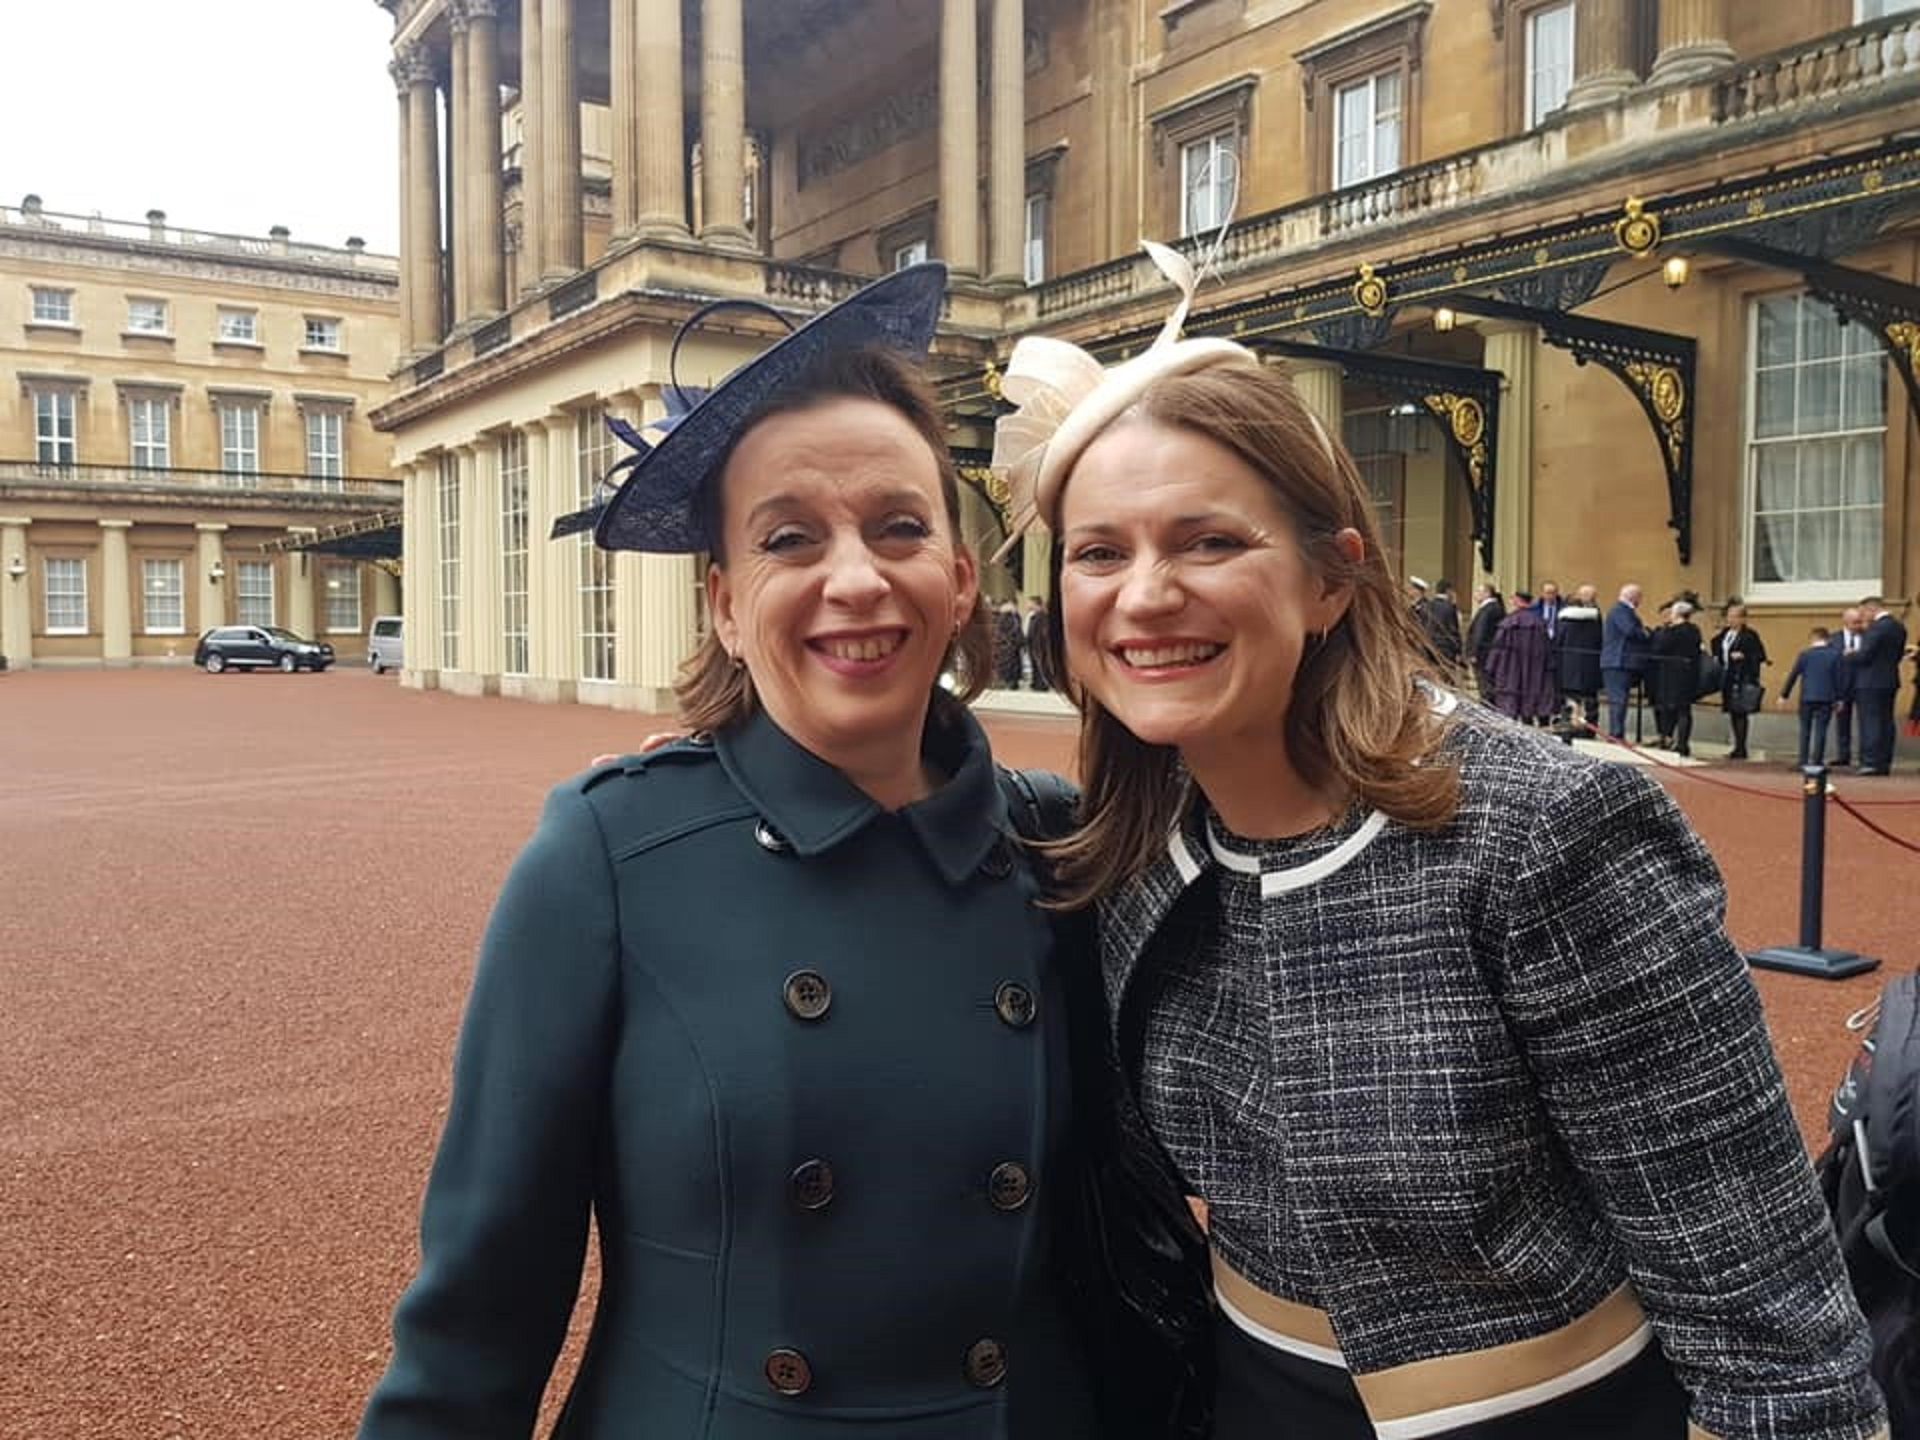 Professor Ali Watson and Catherine Stihler at the Palace.